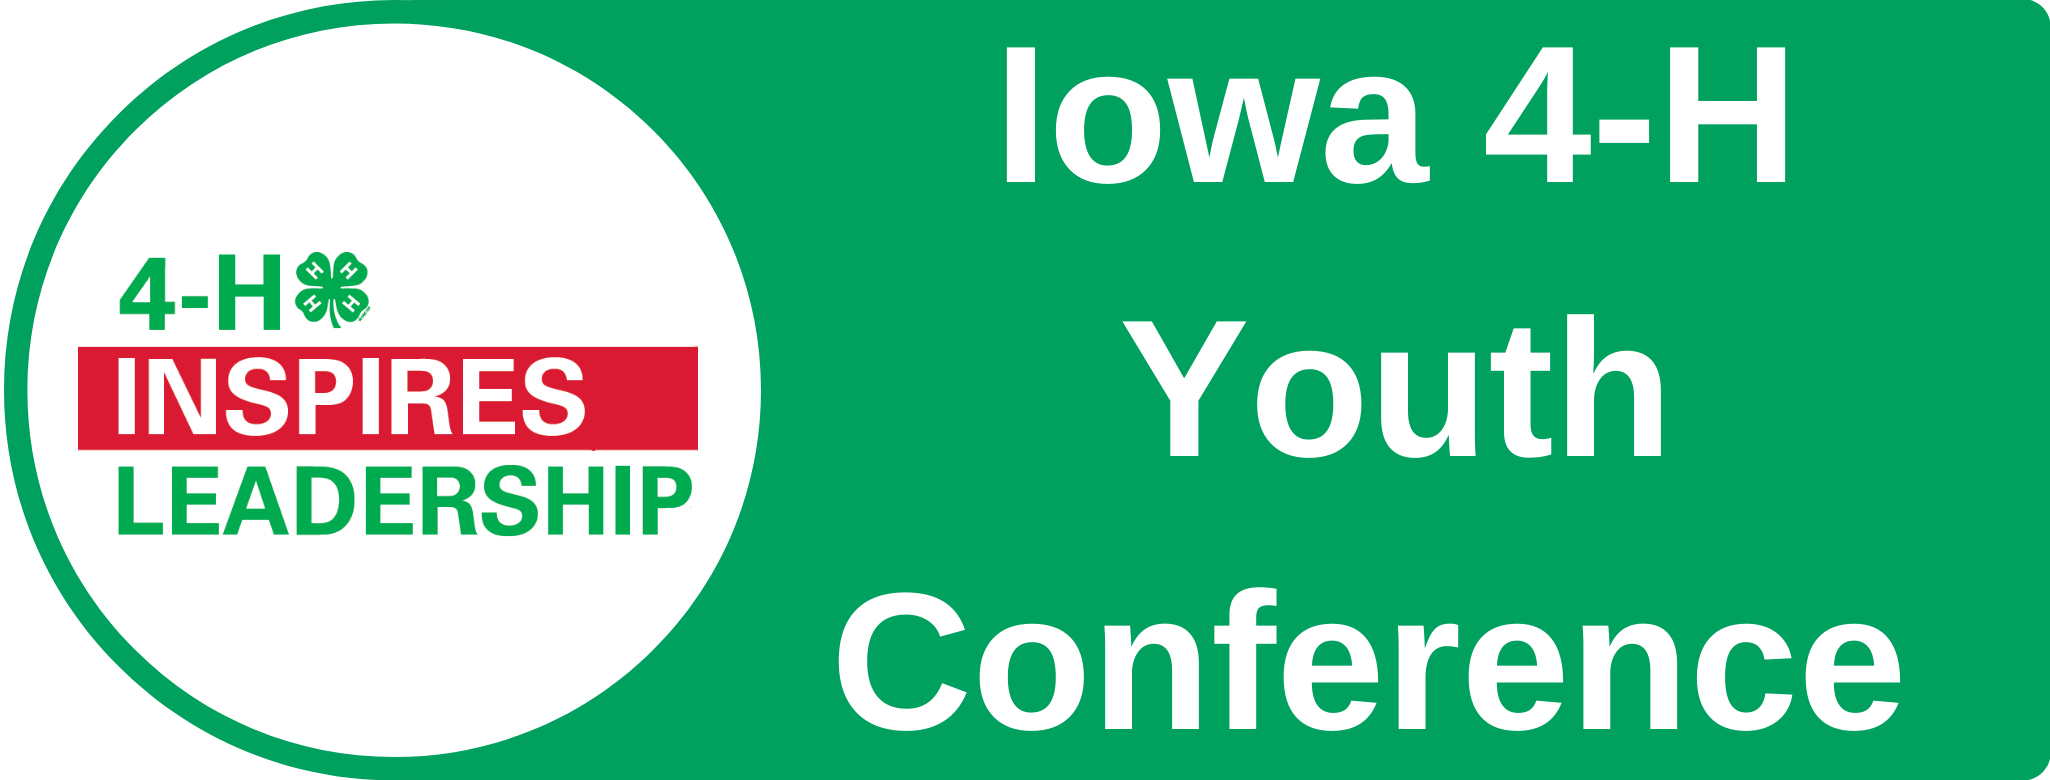 Iowa 4-H Youth Conference